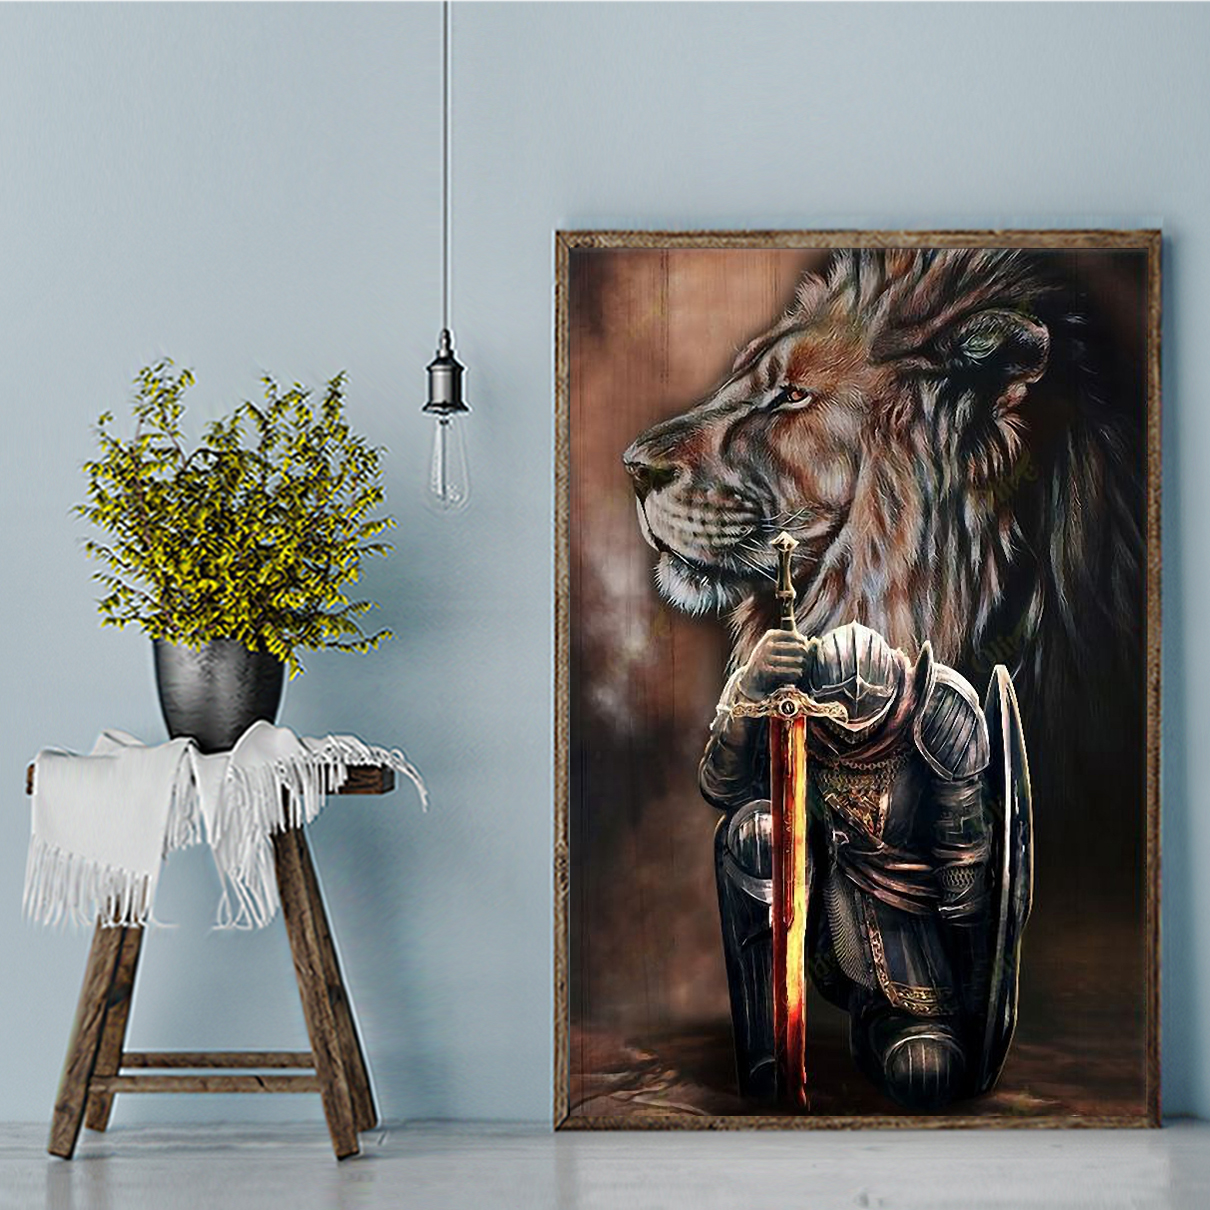 Lion Warriors I am the storm canvas large